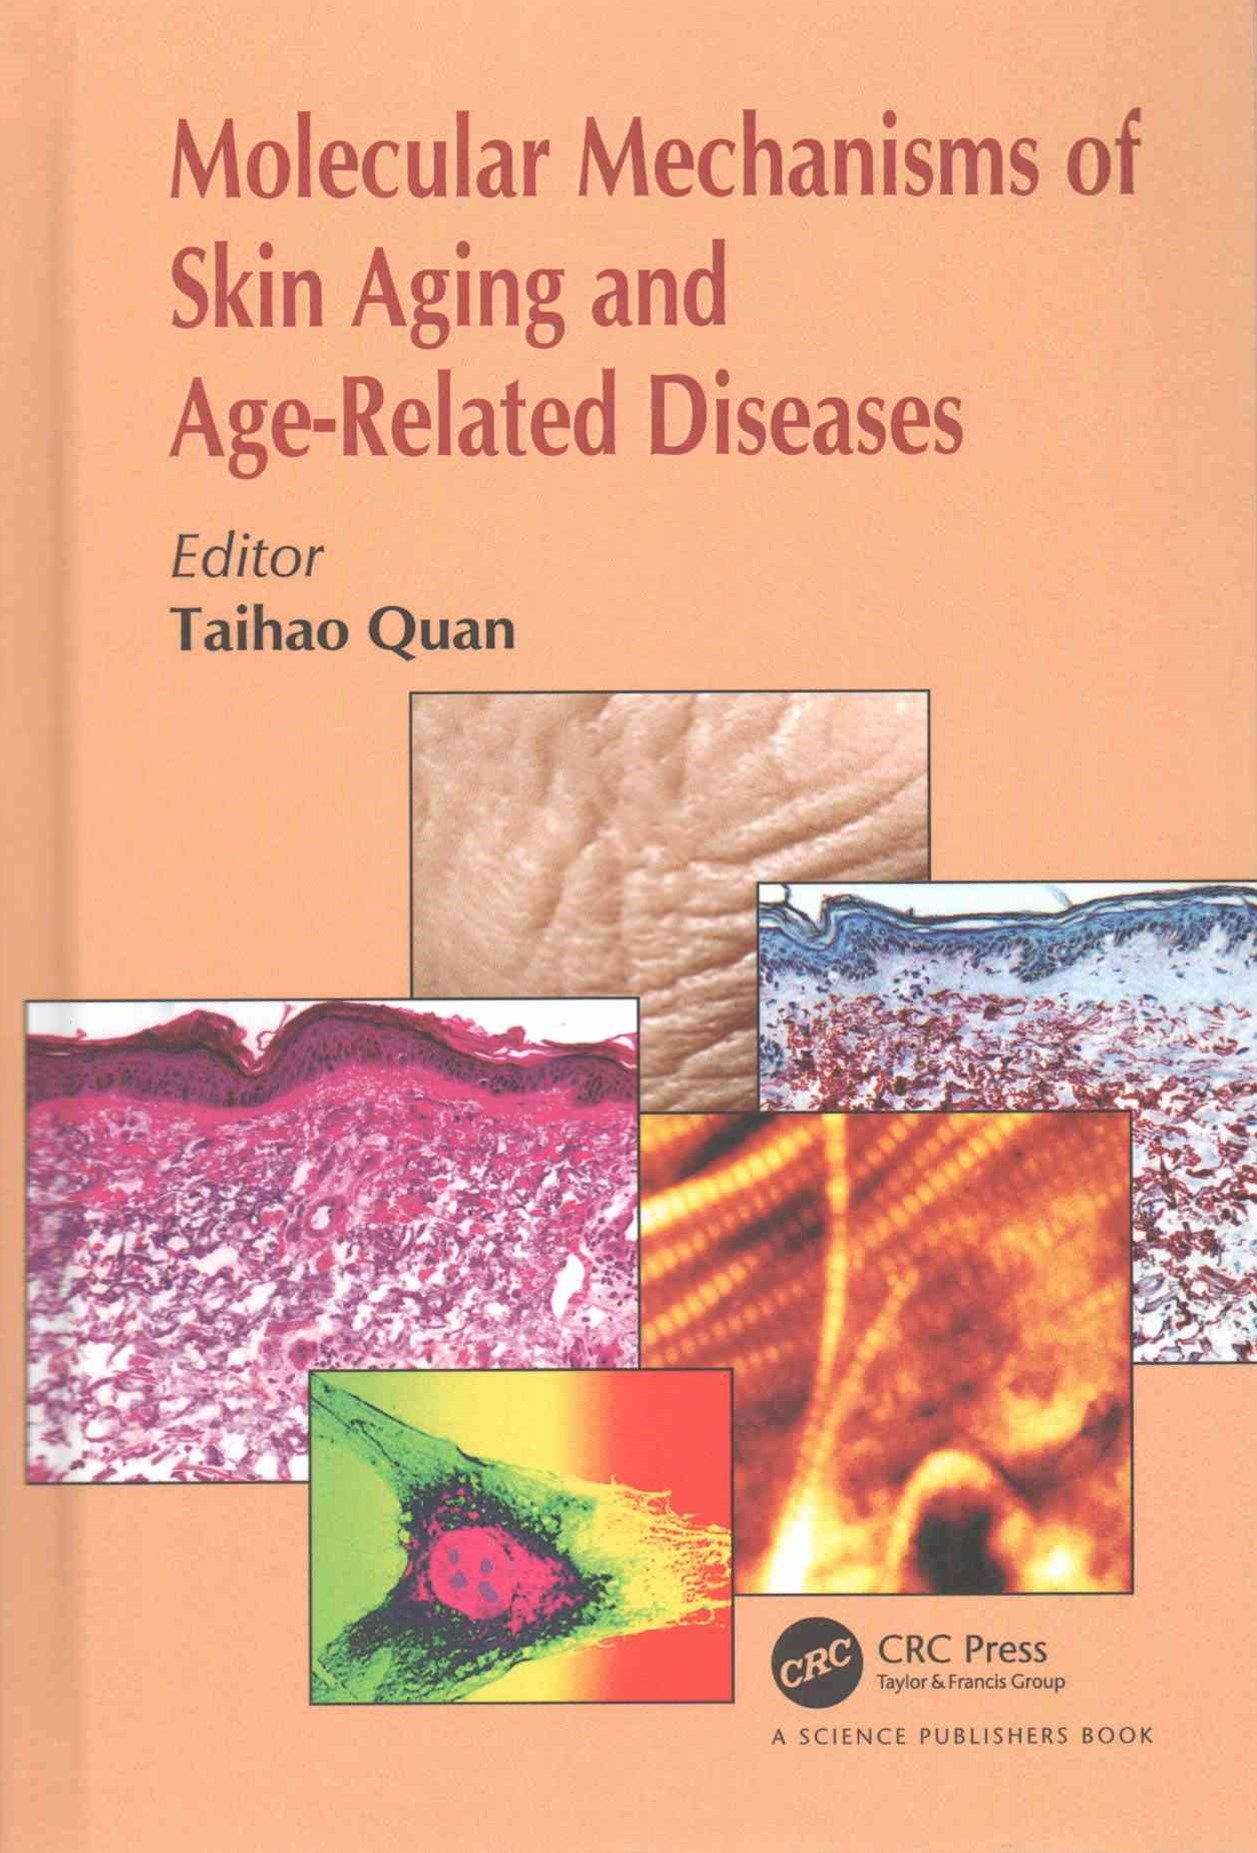 Molecular Mechanisms of Skin Aging and Age-Related Diseases